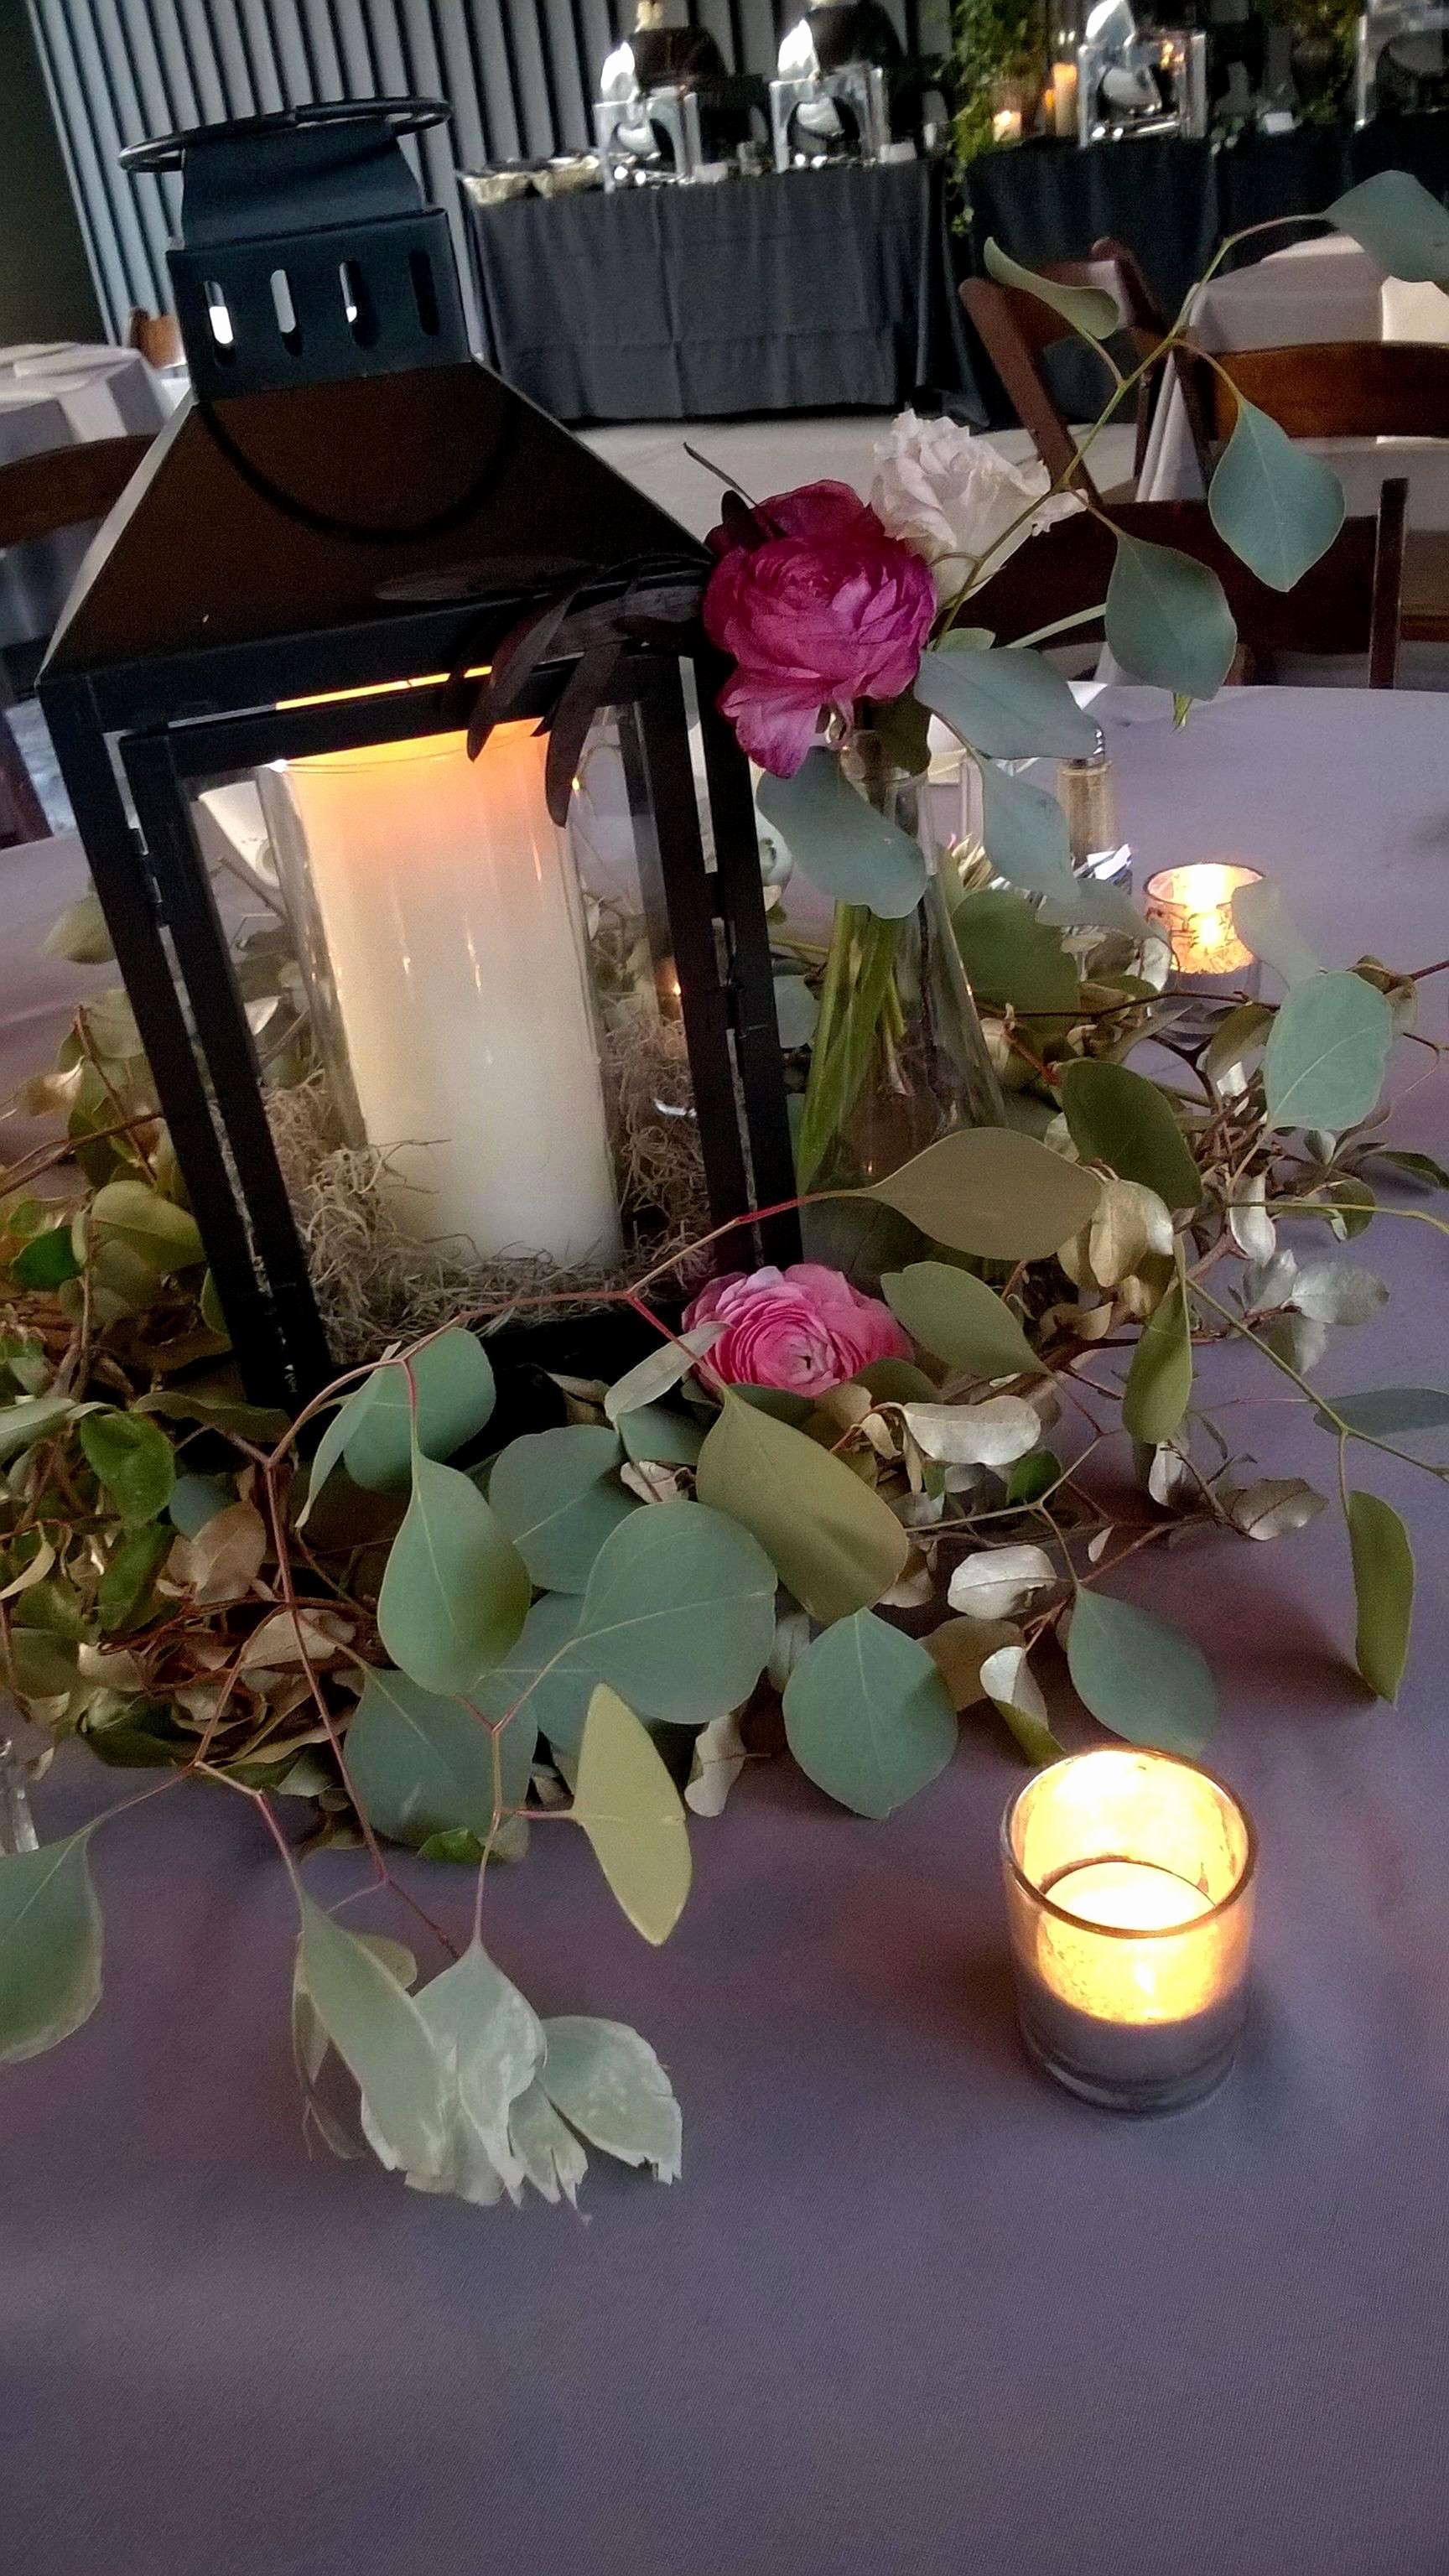 square vase decoration ideas of how to budget for a wedding luxury decorating ideas for wedding a regarding gallery of how to budget for a wedding luxury decorating ideas for wedding a bud new dsc h vases square